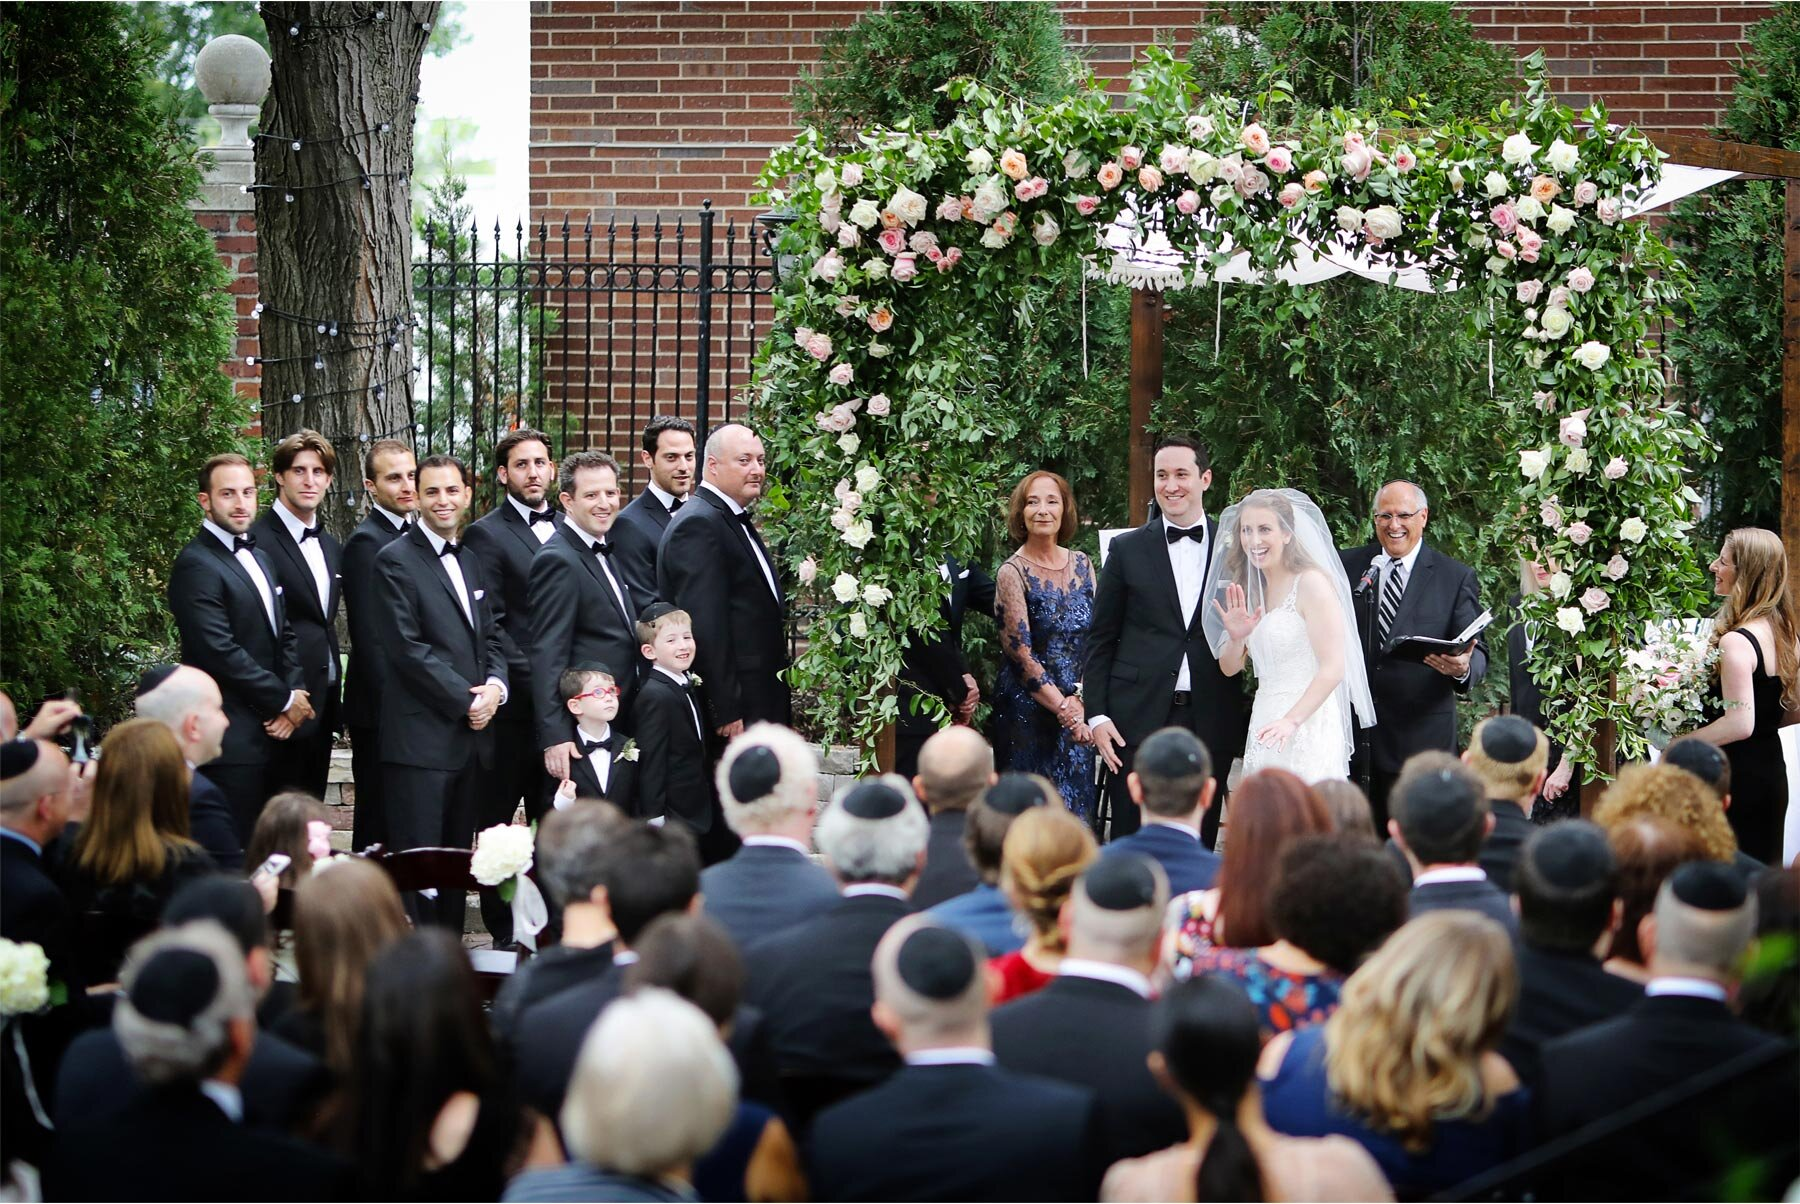 13-Minnesota-Wedding-Vick-Photography-Minneapolis-Event-Centers-Outdoor-Courtyard-Ceremony-Amy-and-Avi.jpg